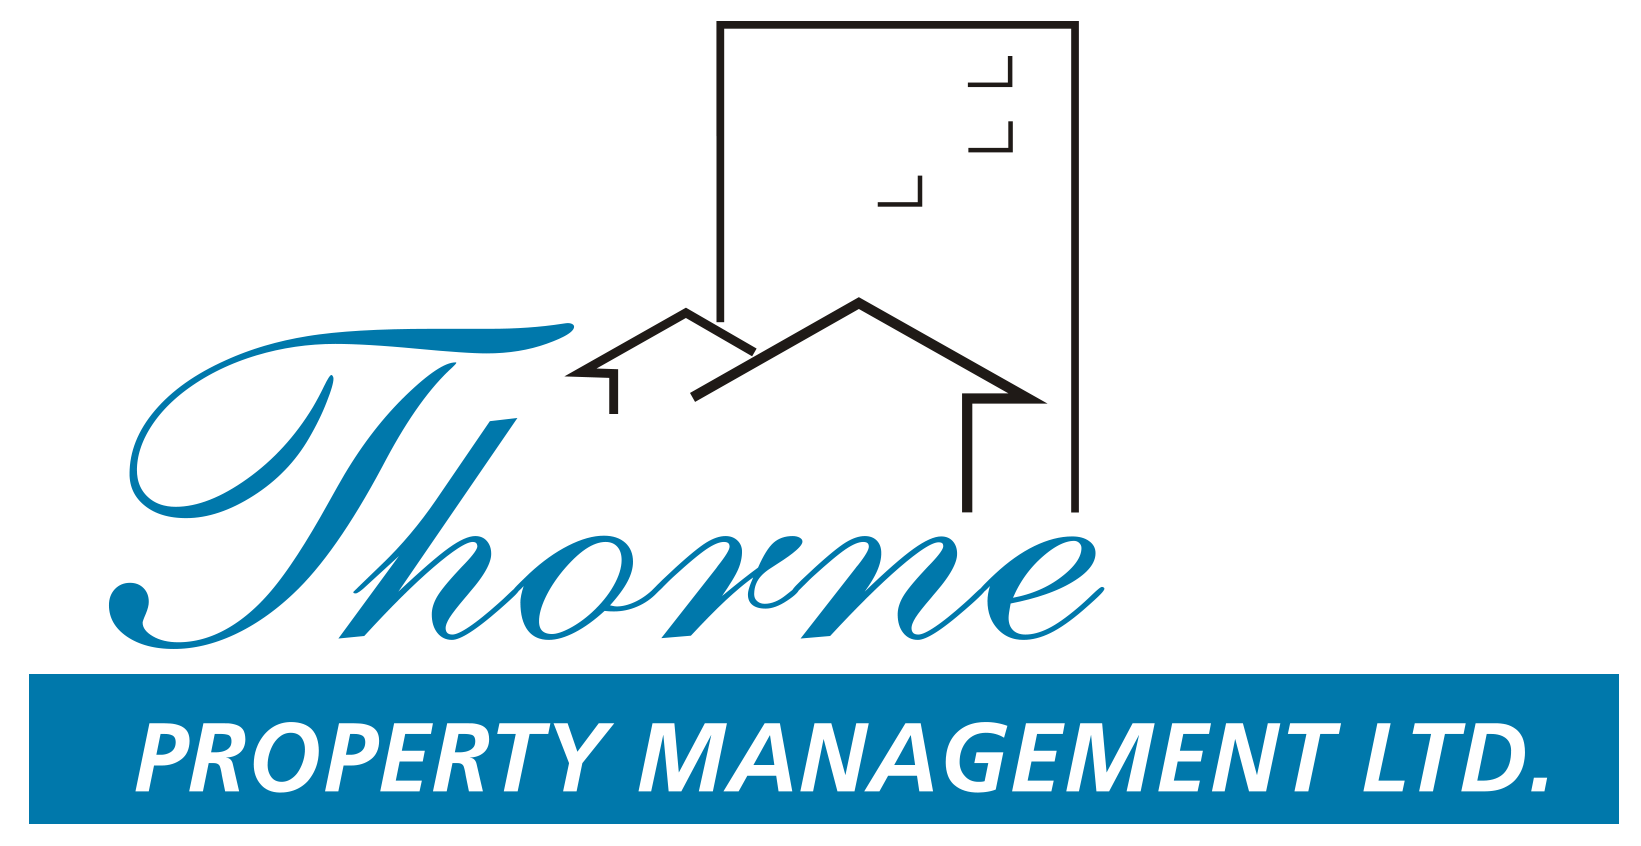 Thorne Property Management LTD. - Professional Property Management